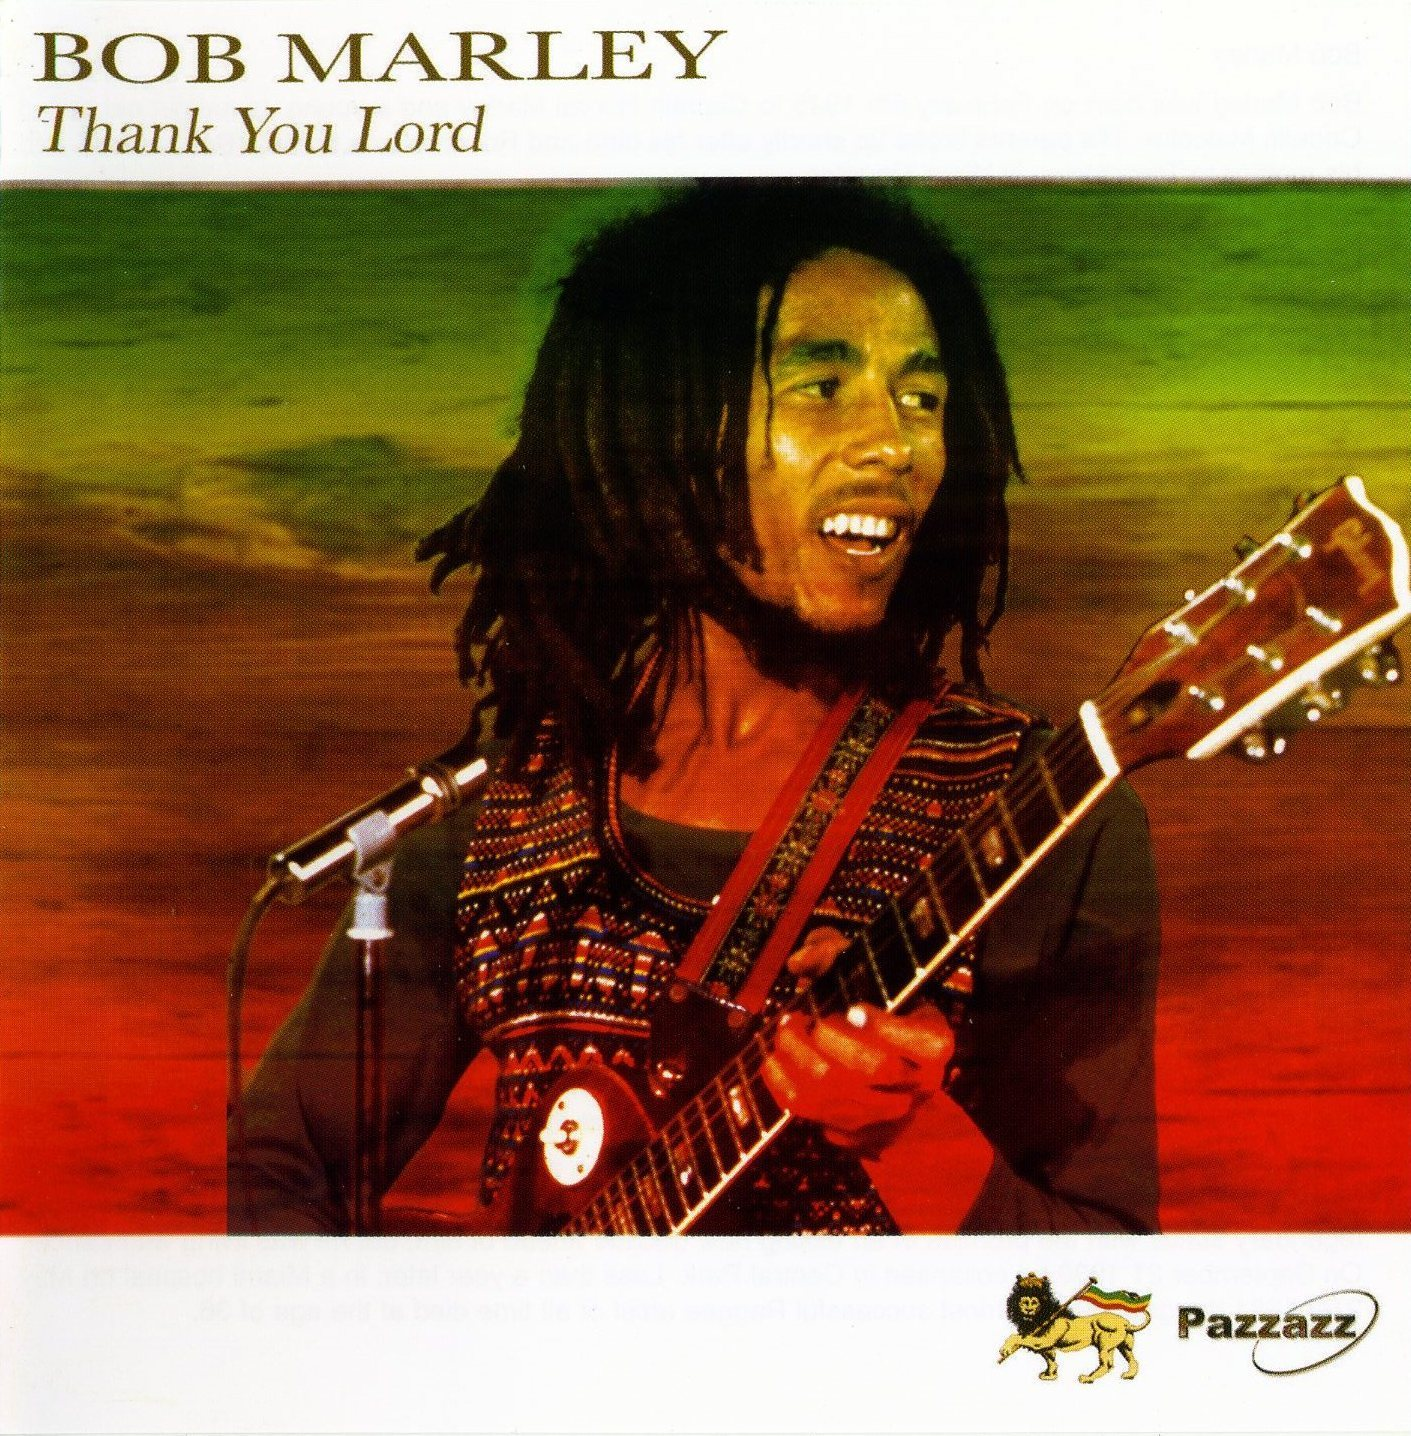 Bob Marley Cry Song Mp3 Download: [Musica]Bob Marley-African Herbsman 6 CD Box-2005 [MG